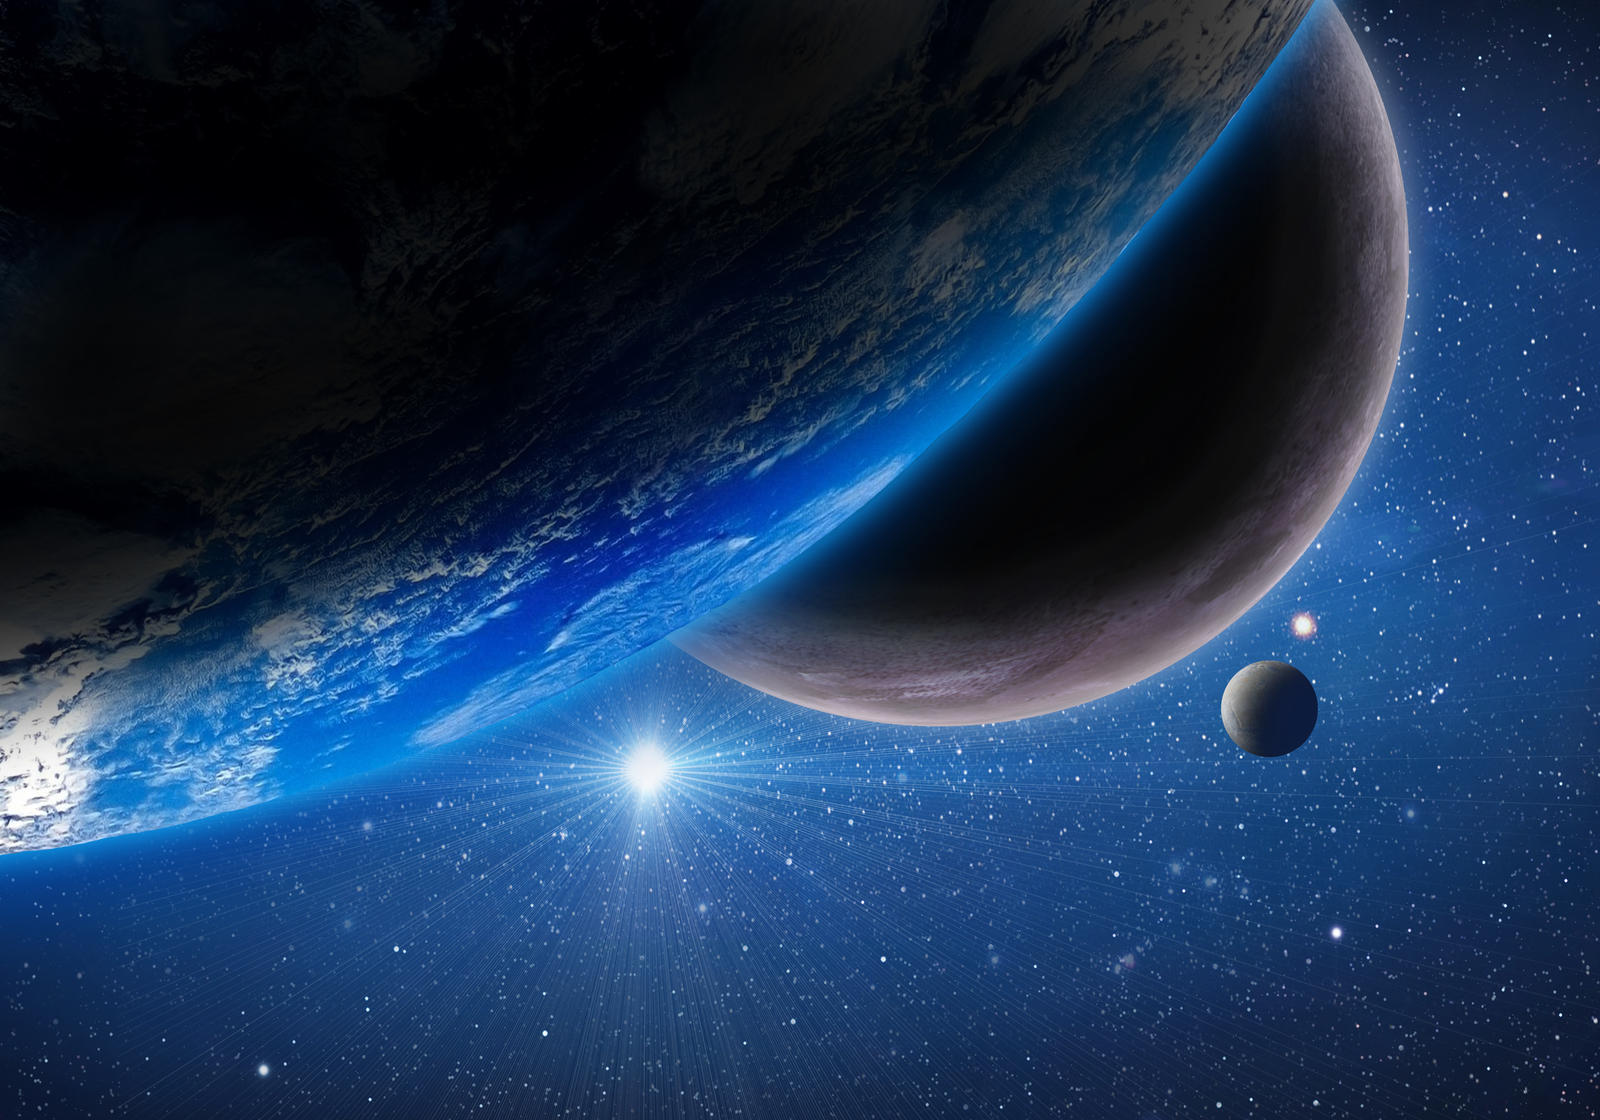 Earth with two moons by Johndoop on deviantART